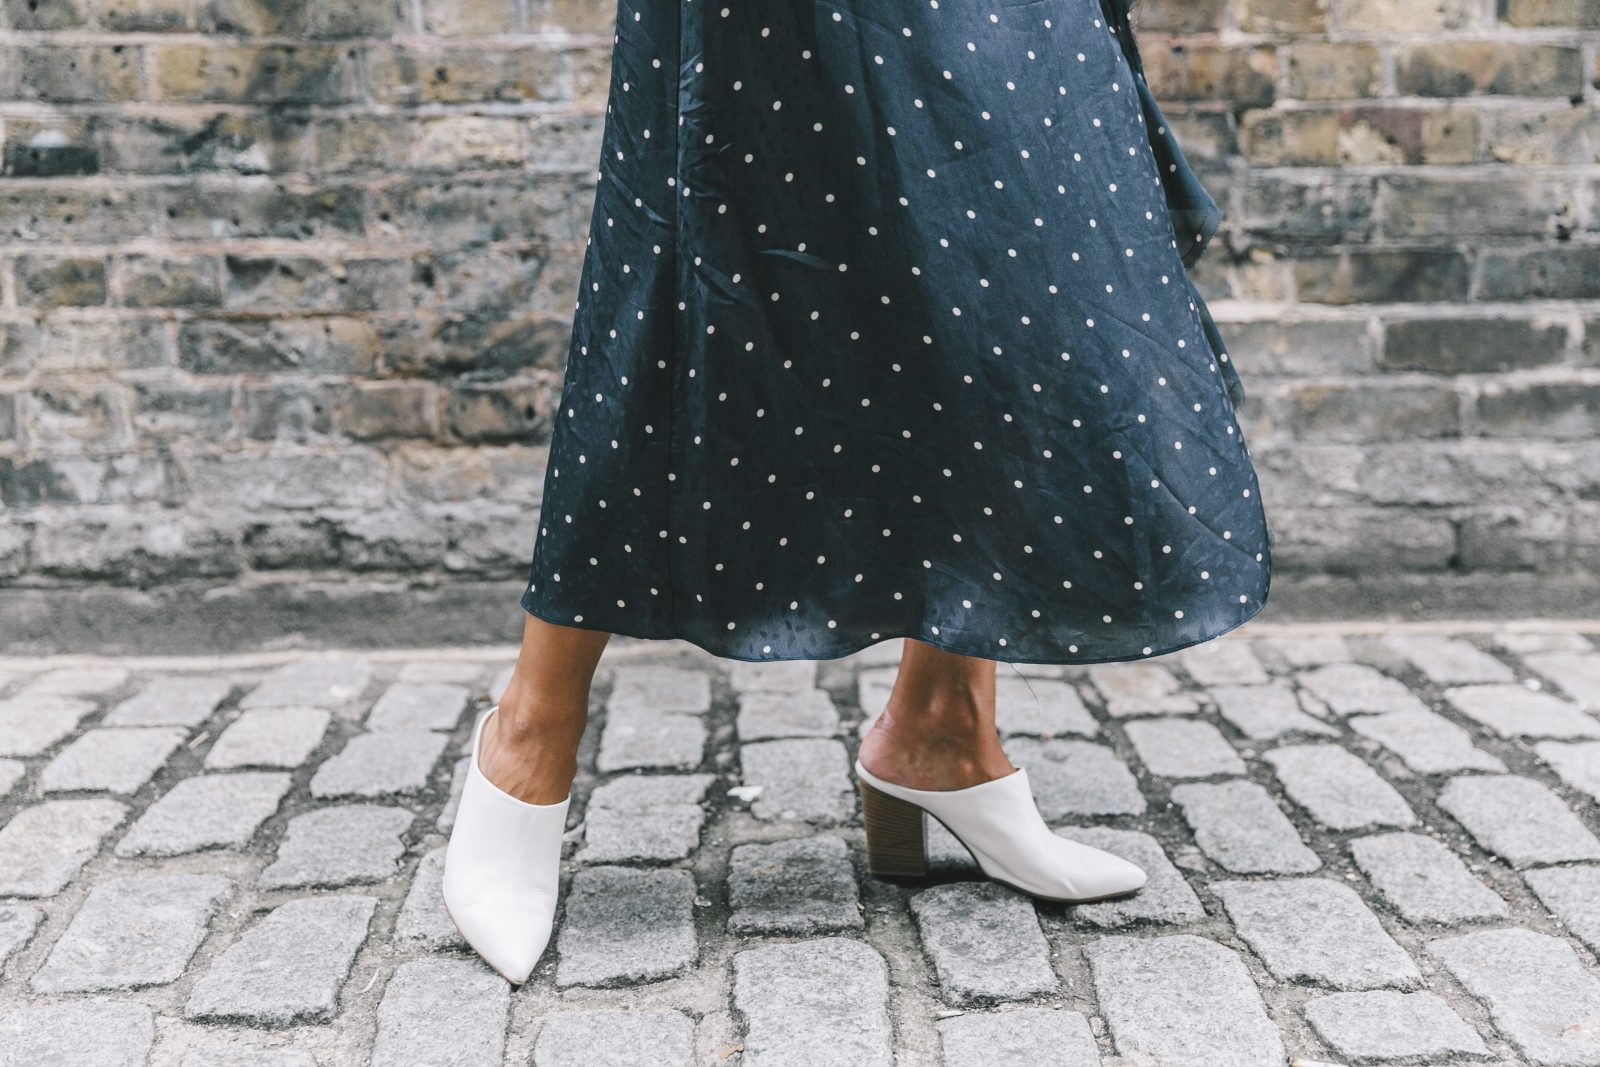 lfw-london_fashion_week_ss17-street_style-outfits-collage_vintage-vintage-topshop_unique-polka_dot_dress-white_mules-topshop_boutique-adenorah-24